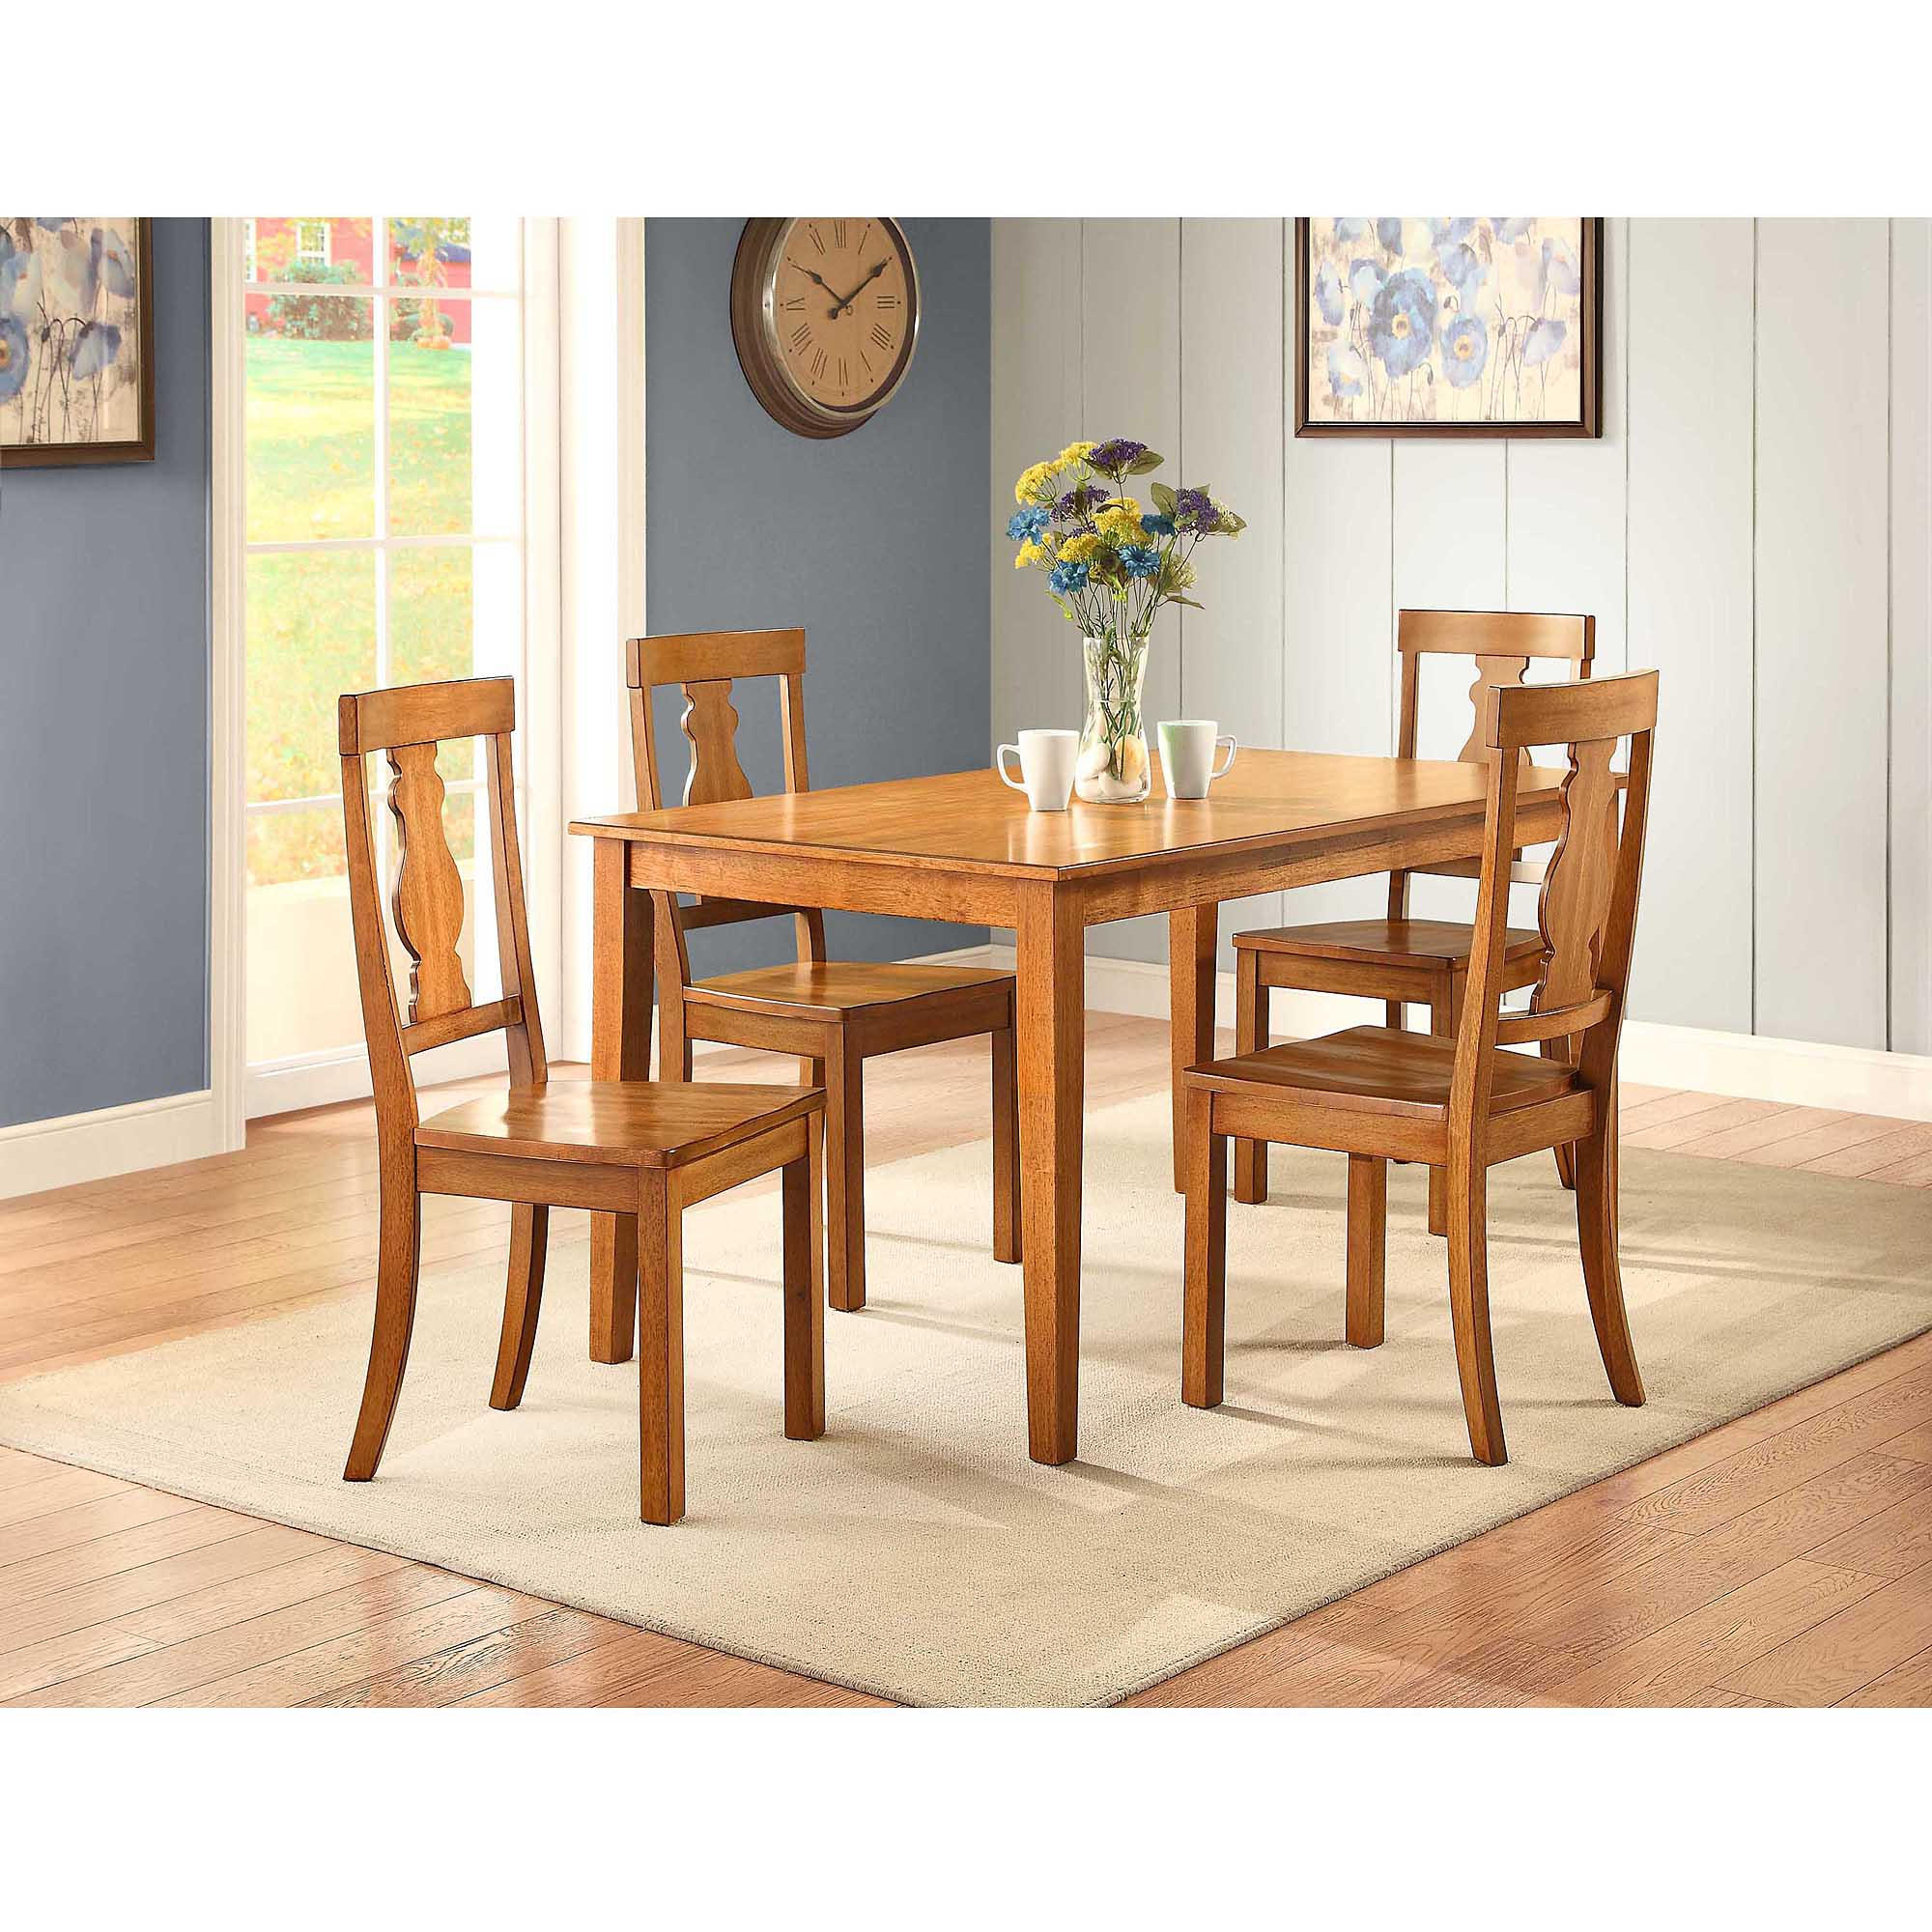 100 Better Homes And Gardens Dining Room Furniture